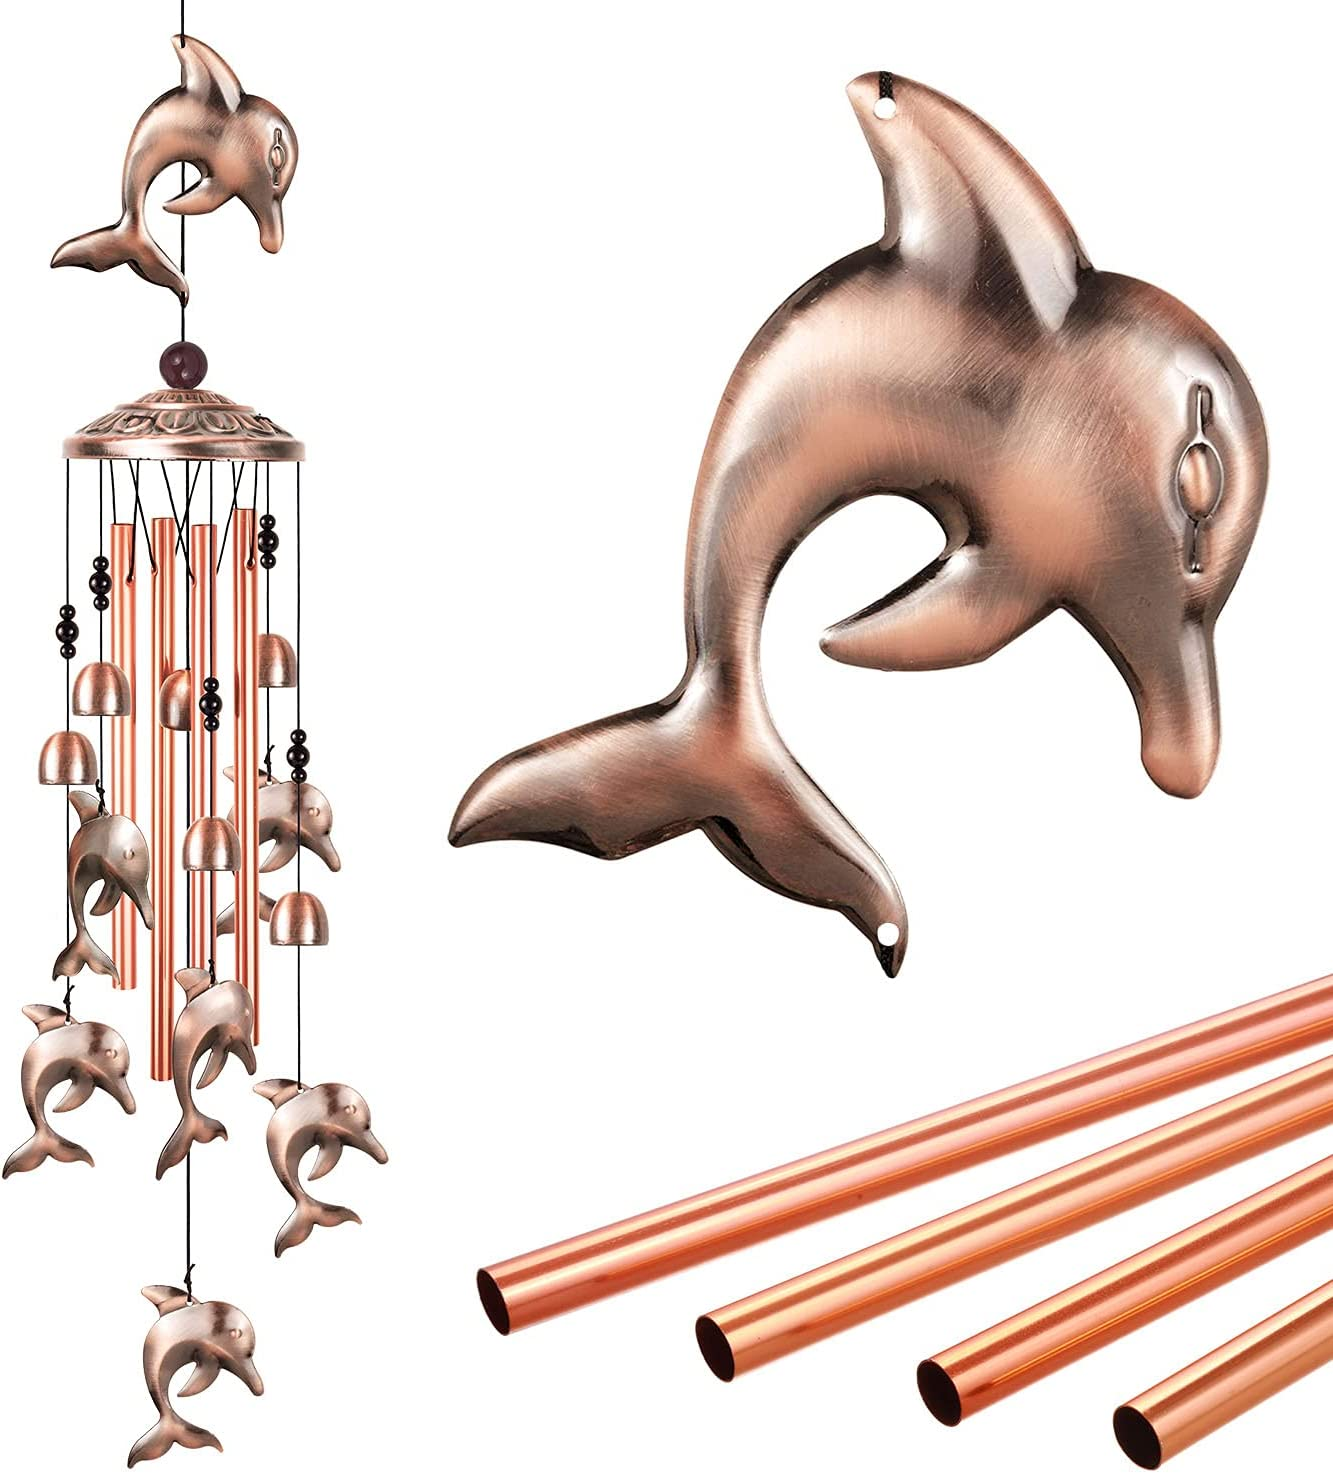 12. Dolphin Wind Chime